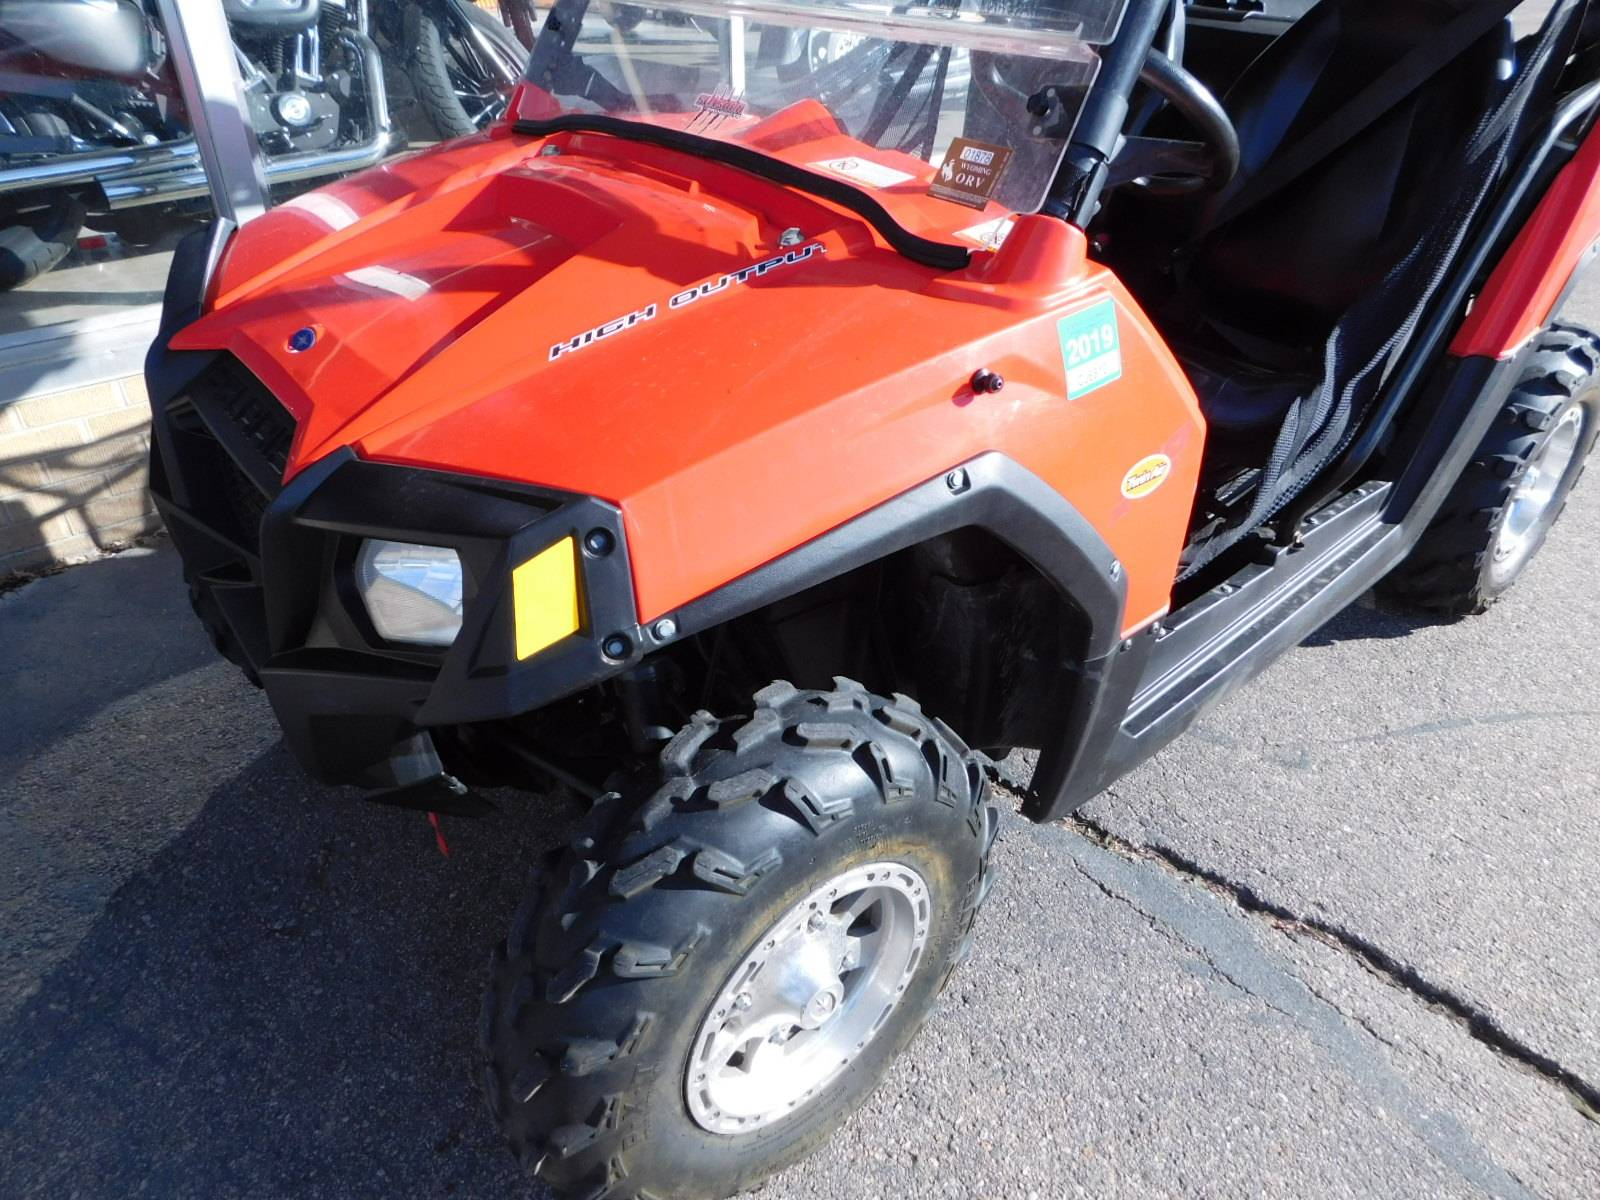 2013 Polaris RZR® 800 in Loveland, Colorado - Photo 2